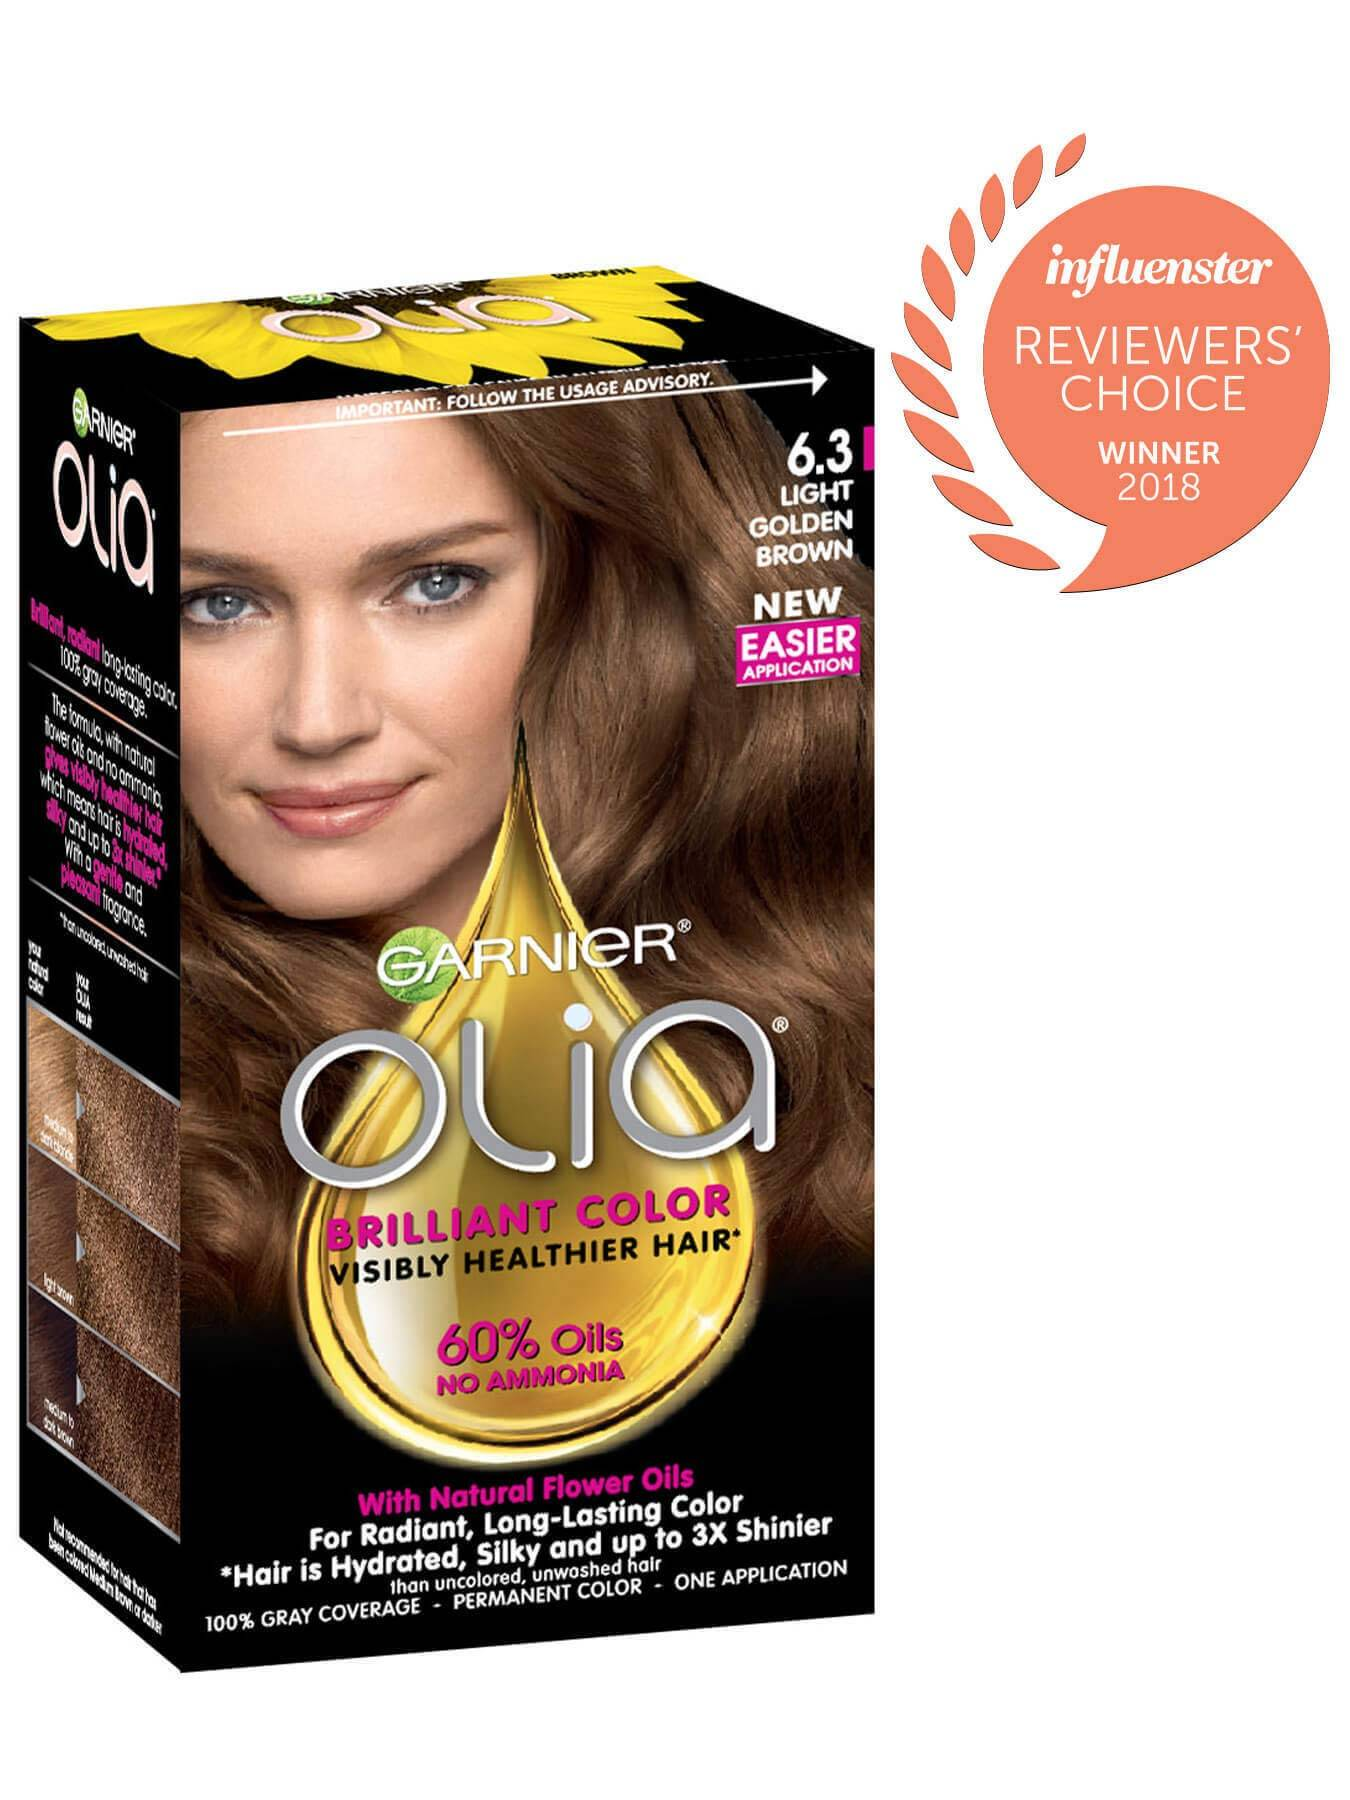 Garnier Olia Packshot Award 6.3 Light Golden Brown